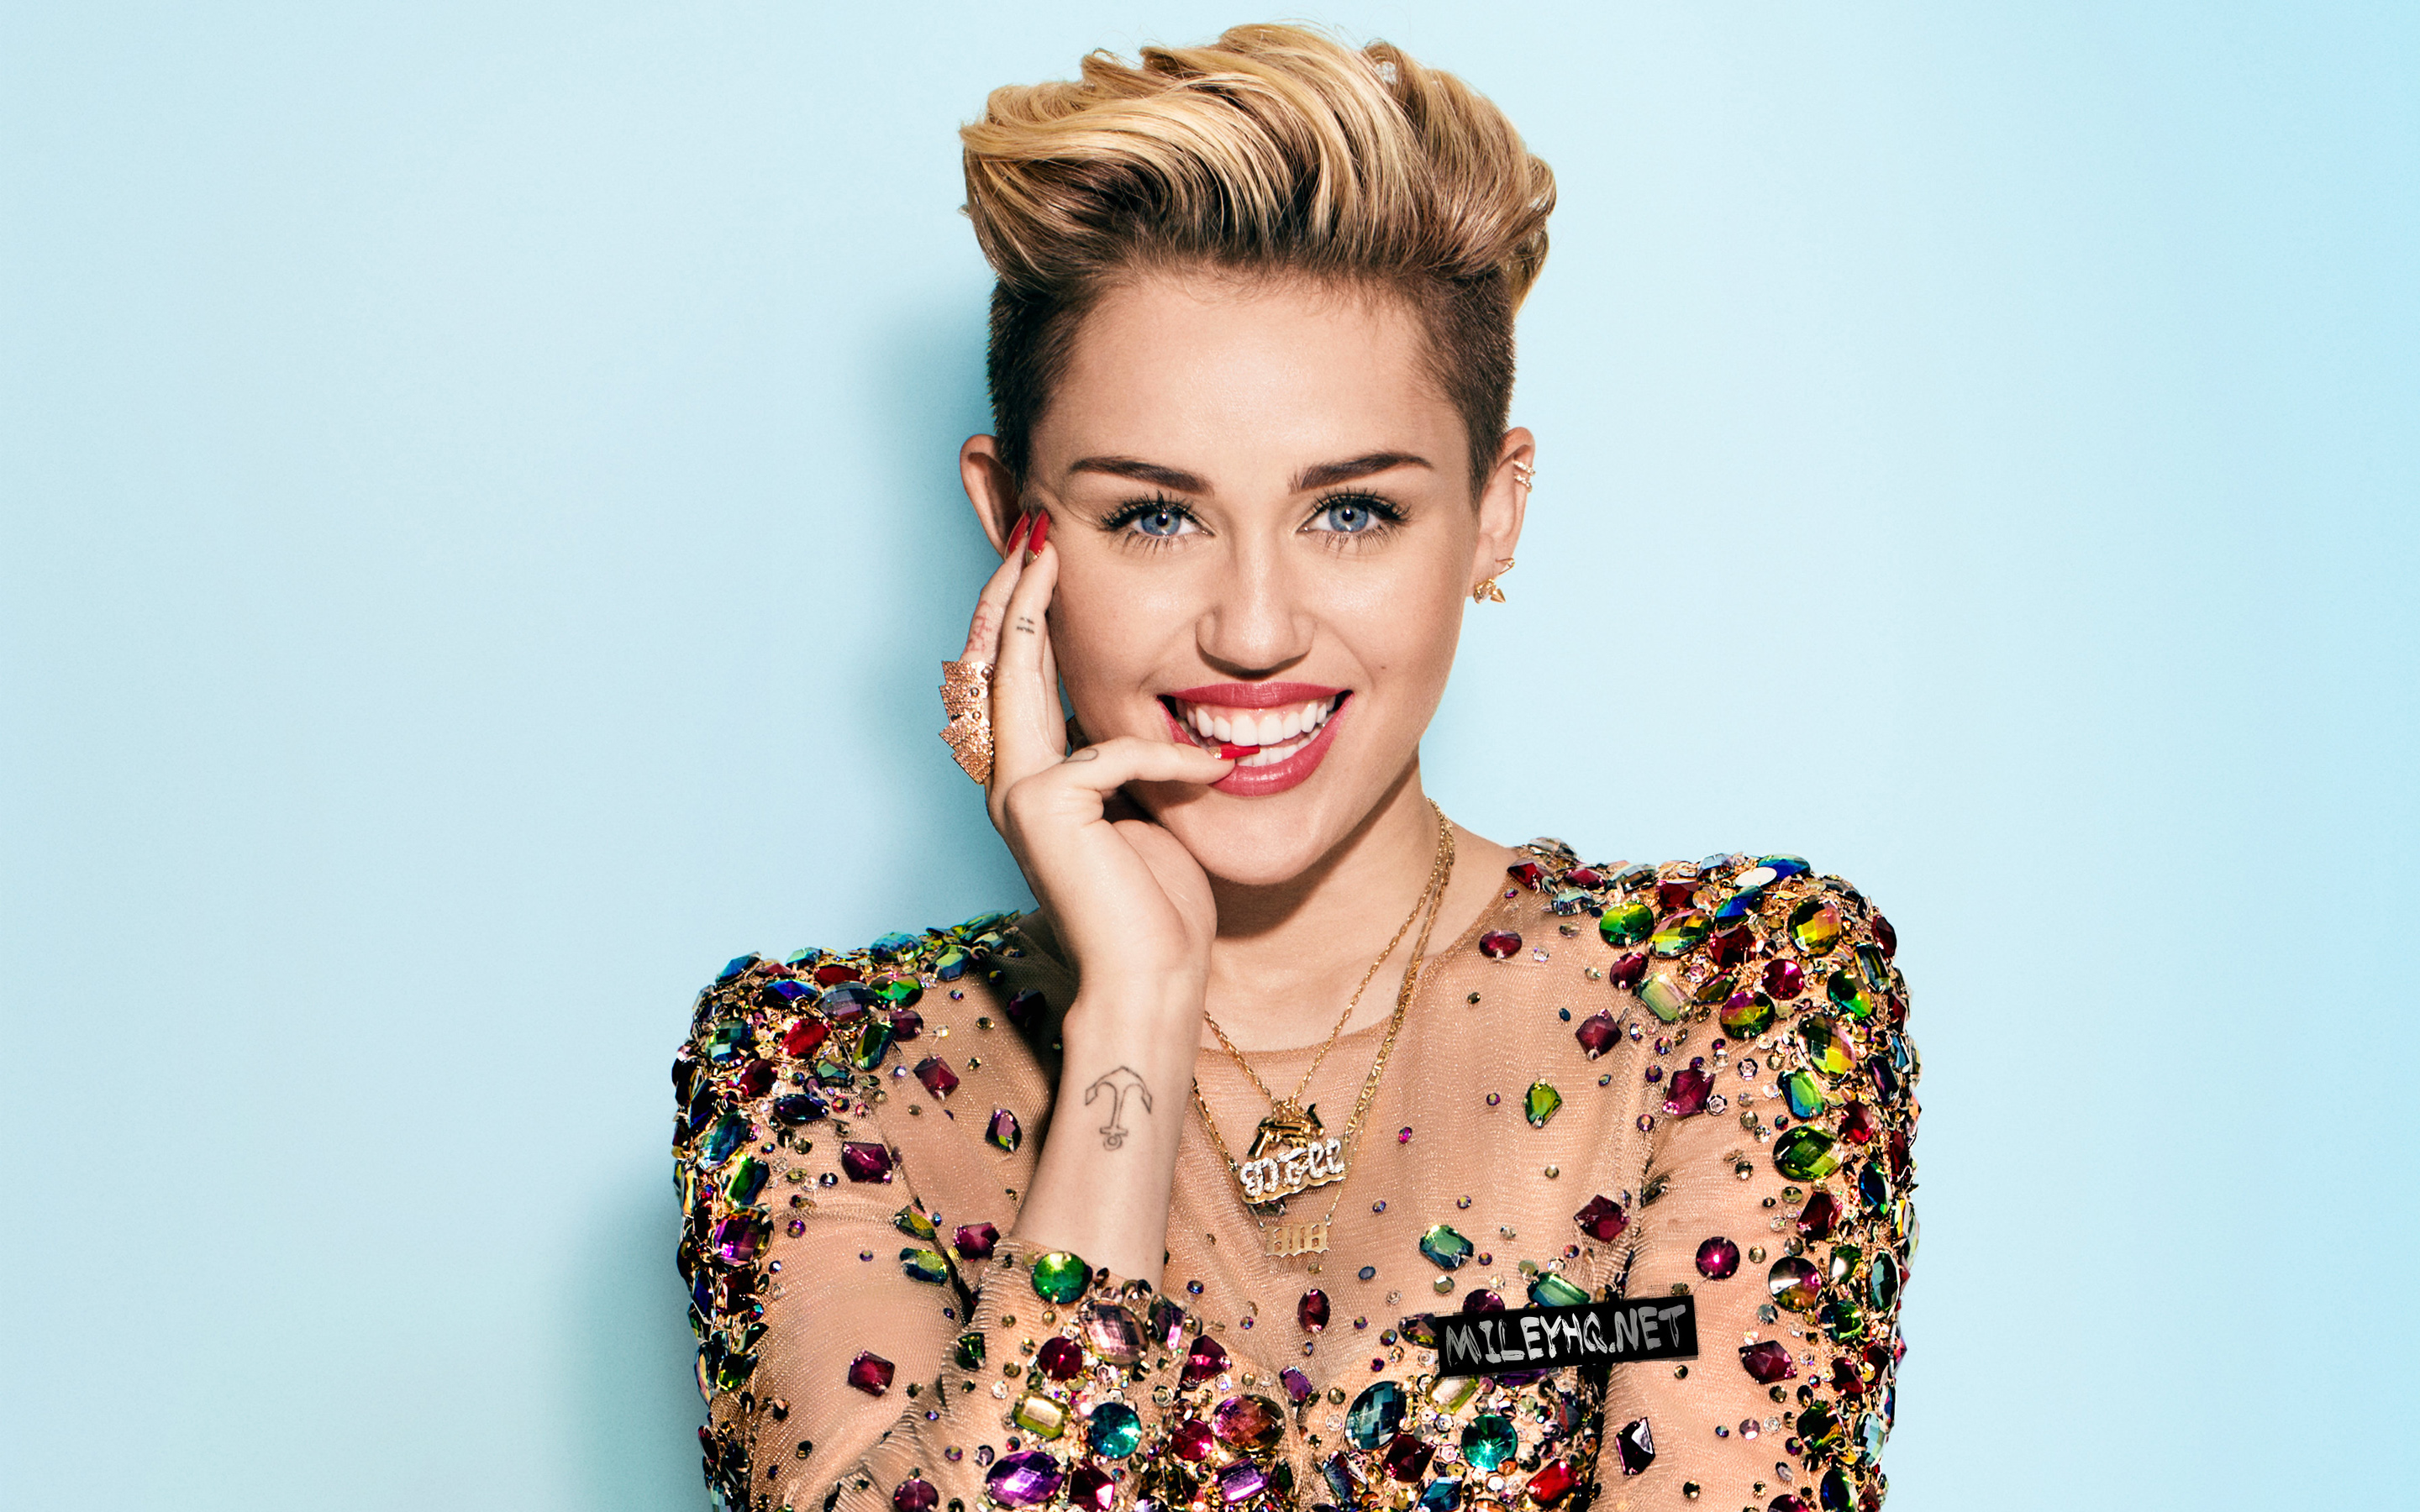 HD Wallpapers Miley Cyrus 83